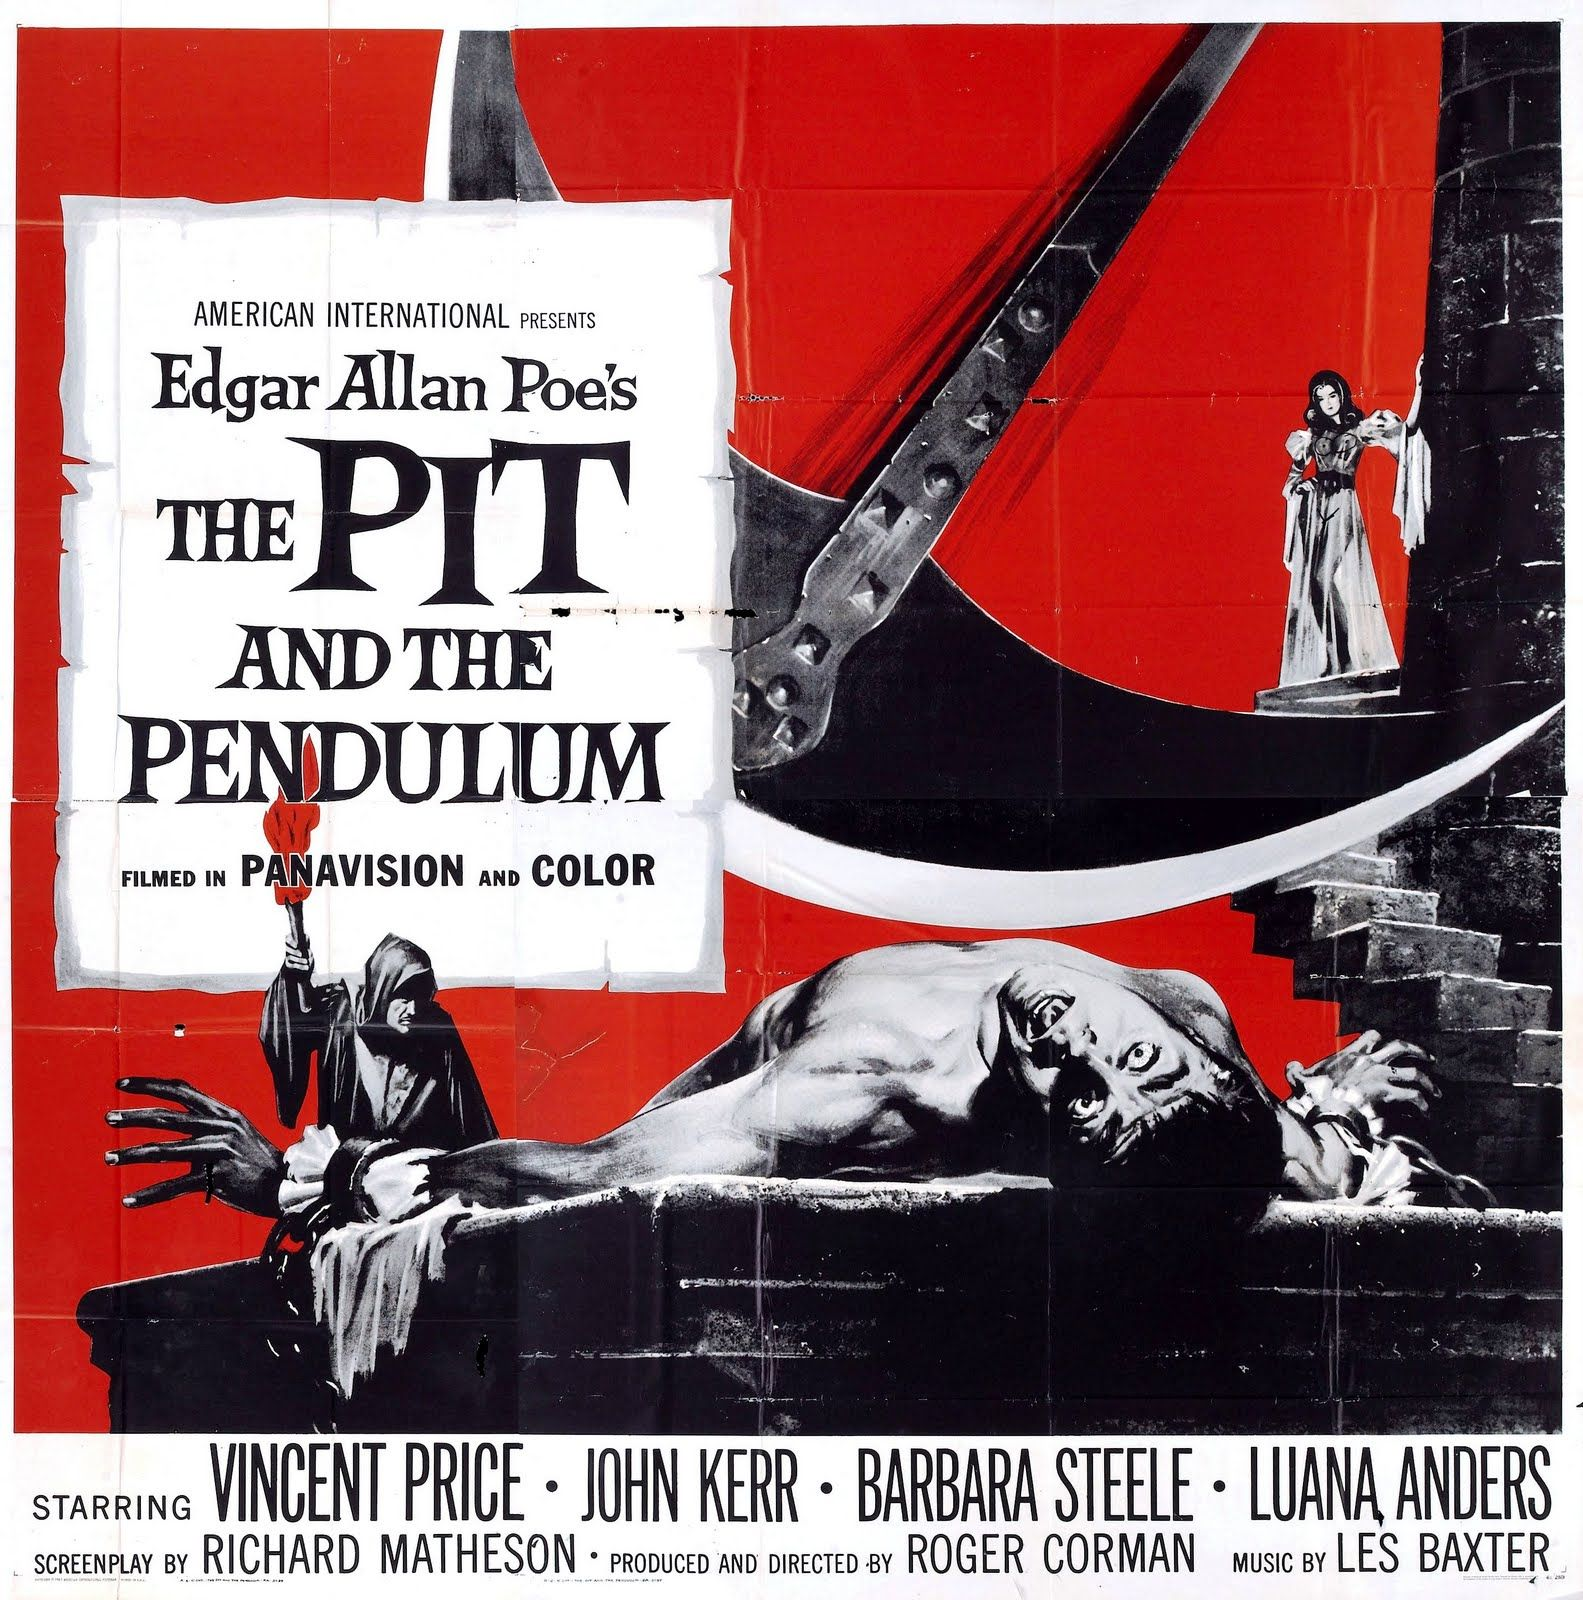 edgar allan poe the pit and the pendulum essay What a world of merriment their melody foretells 26-11-2017 struggling with edgar darwins theory on evolution allan poe's the pit and the pendulum the bells the pit and the pendulum essay.